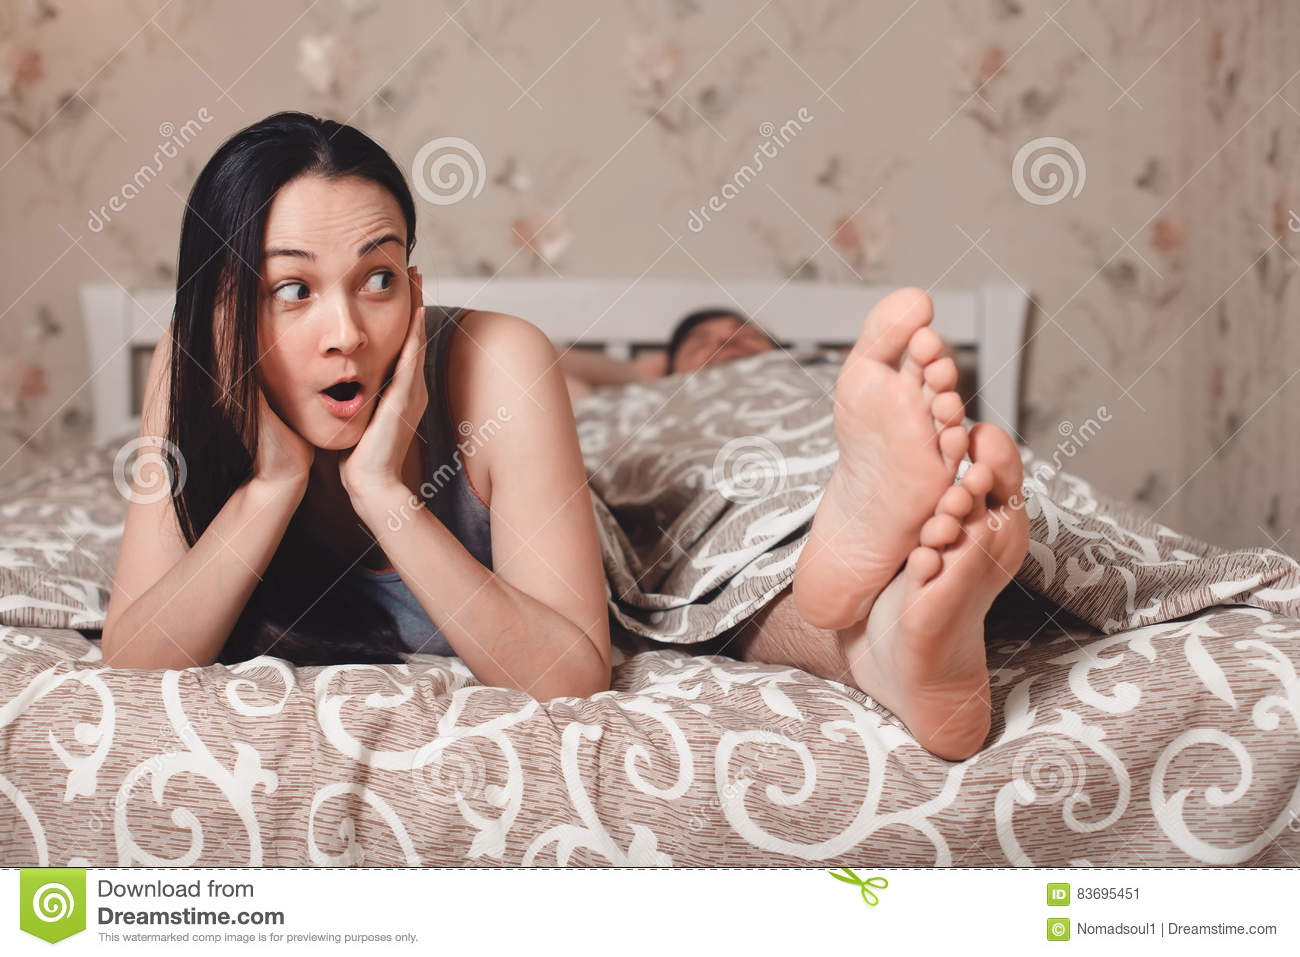 Men And Women In Bedroom Surprised Woman With Her Man Lying In Bed Stock Photo Image